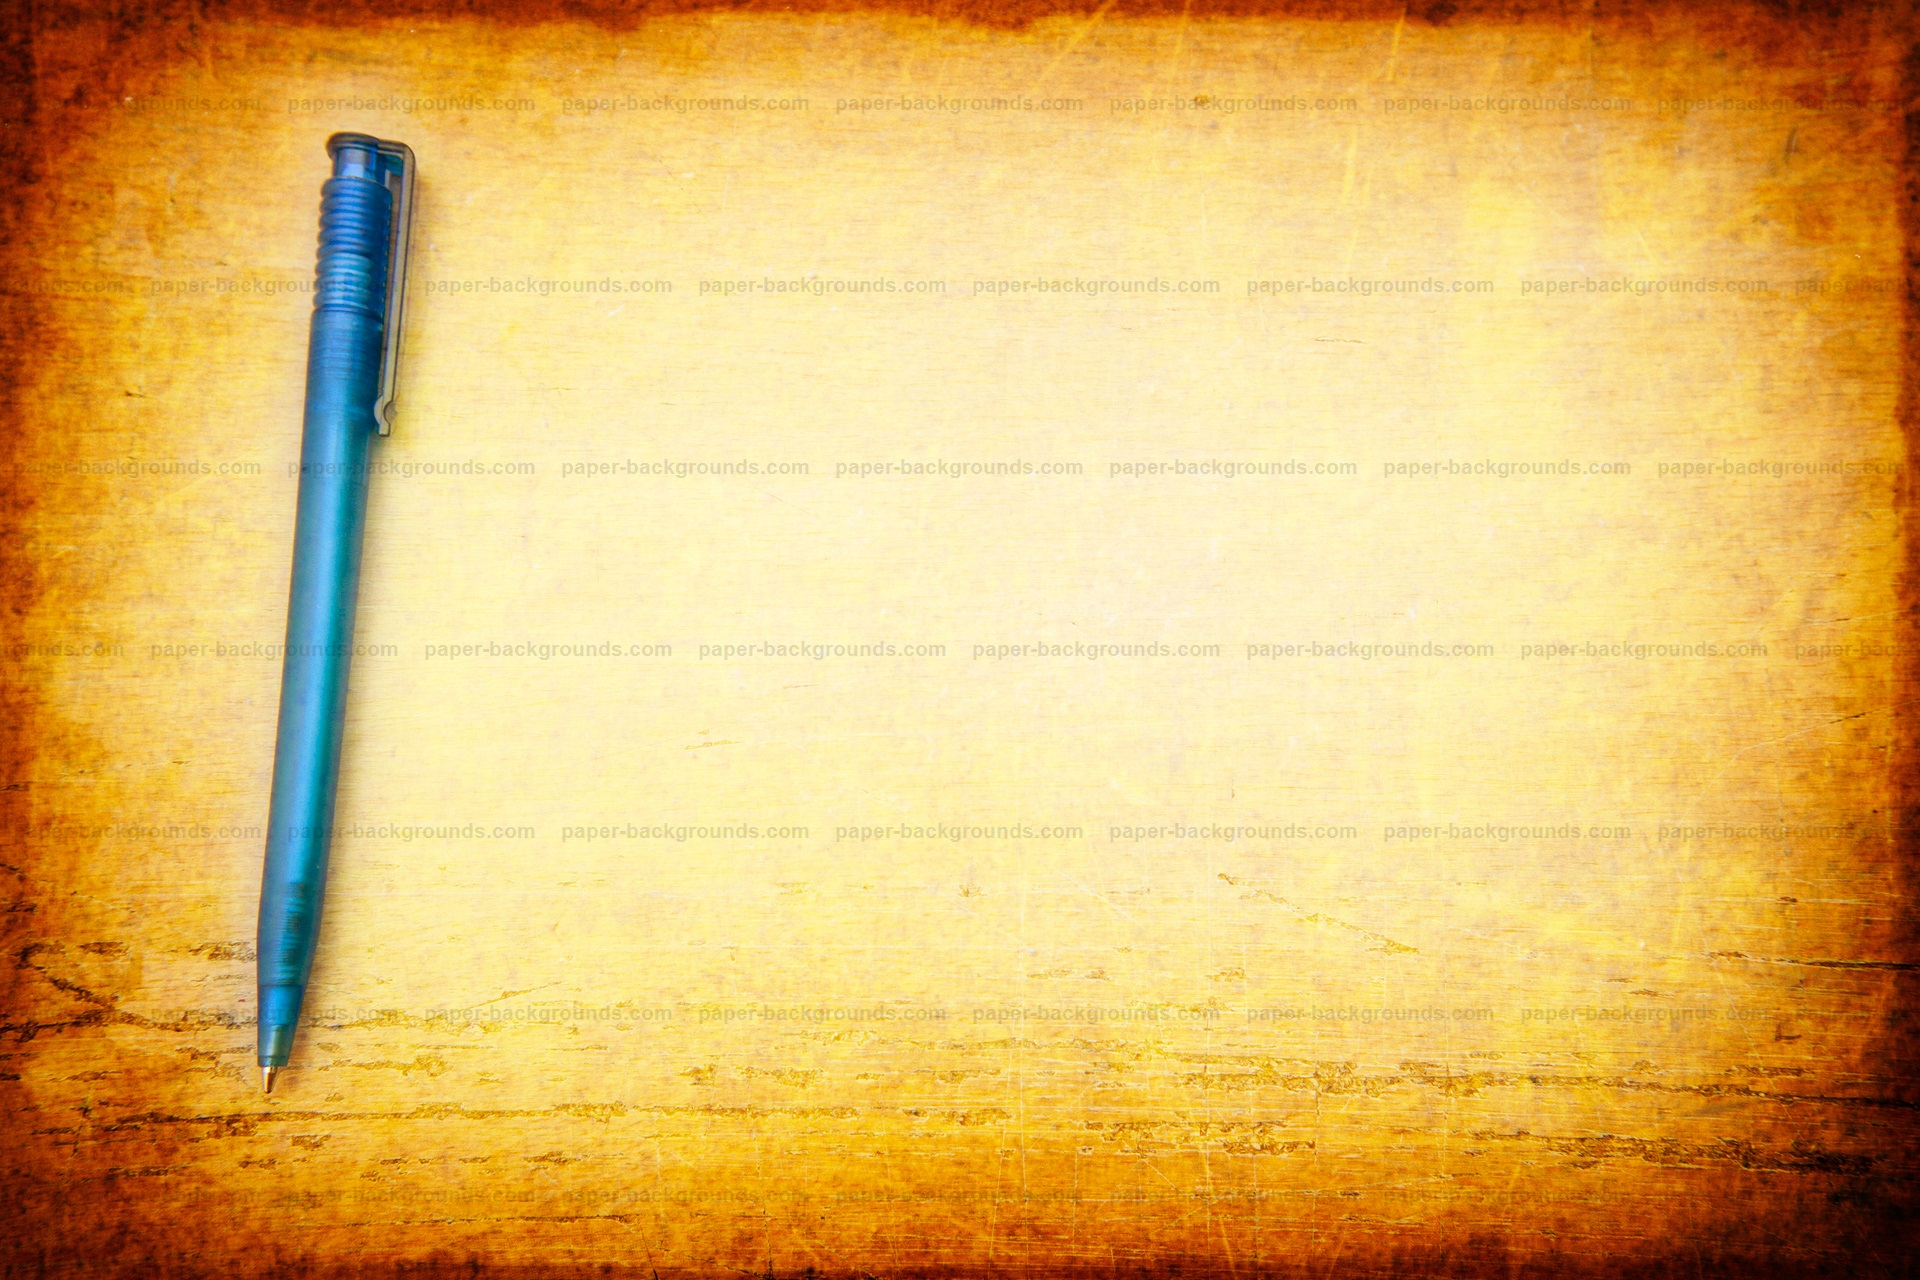 Paper Backgrounds pen on table vintage background hd 1920x1280